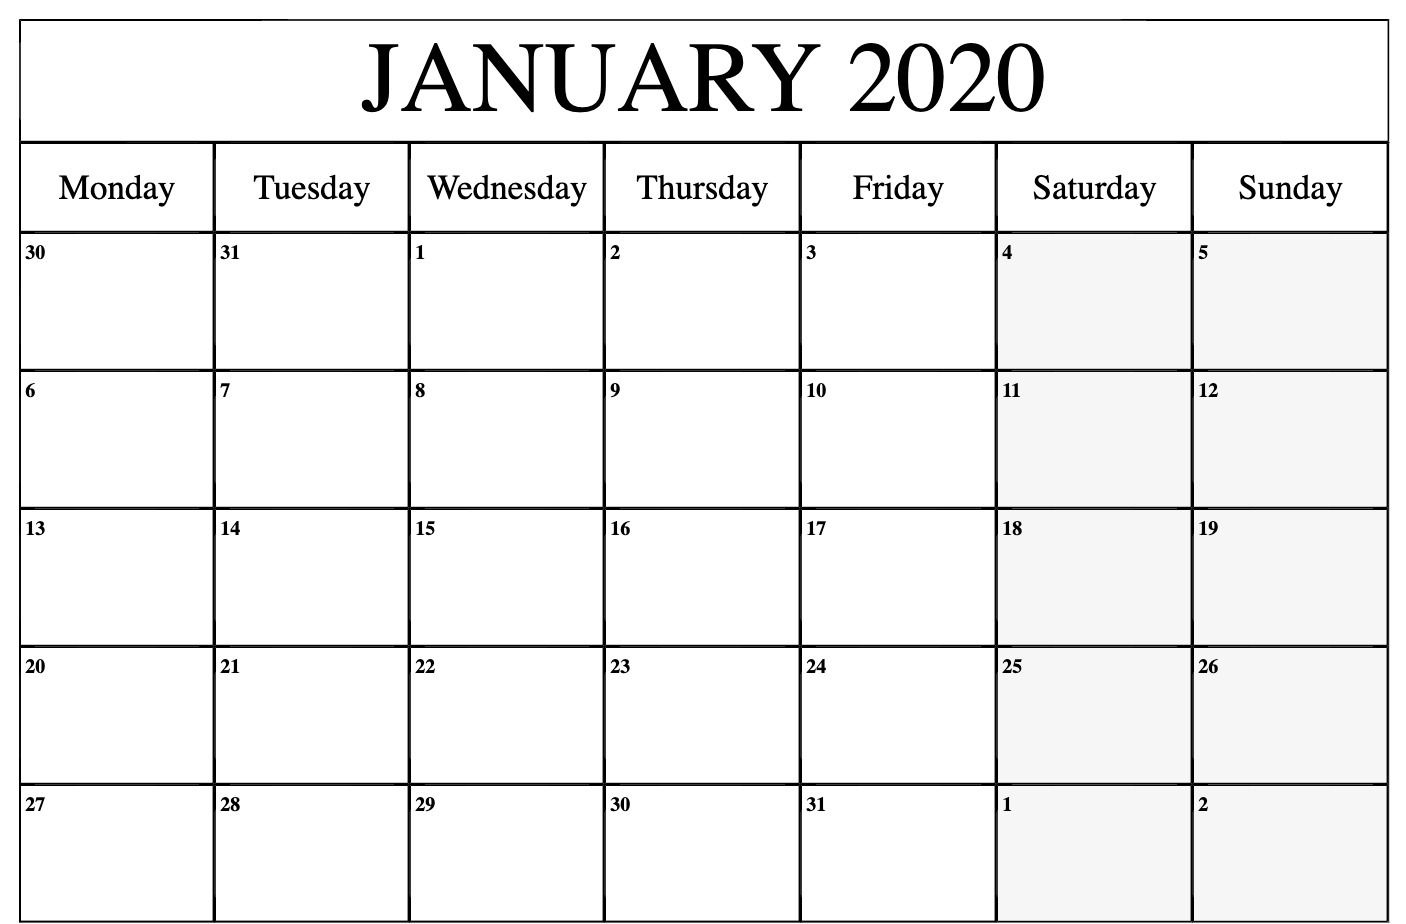 January Calendar 2020 Pdf | Printable Calendar Template